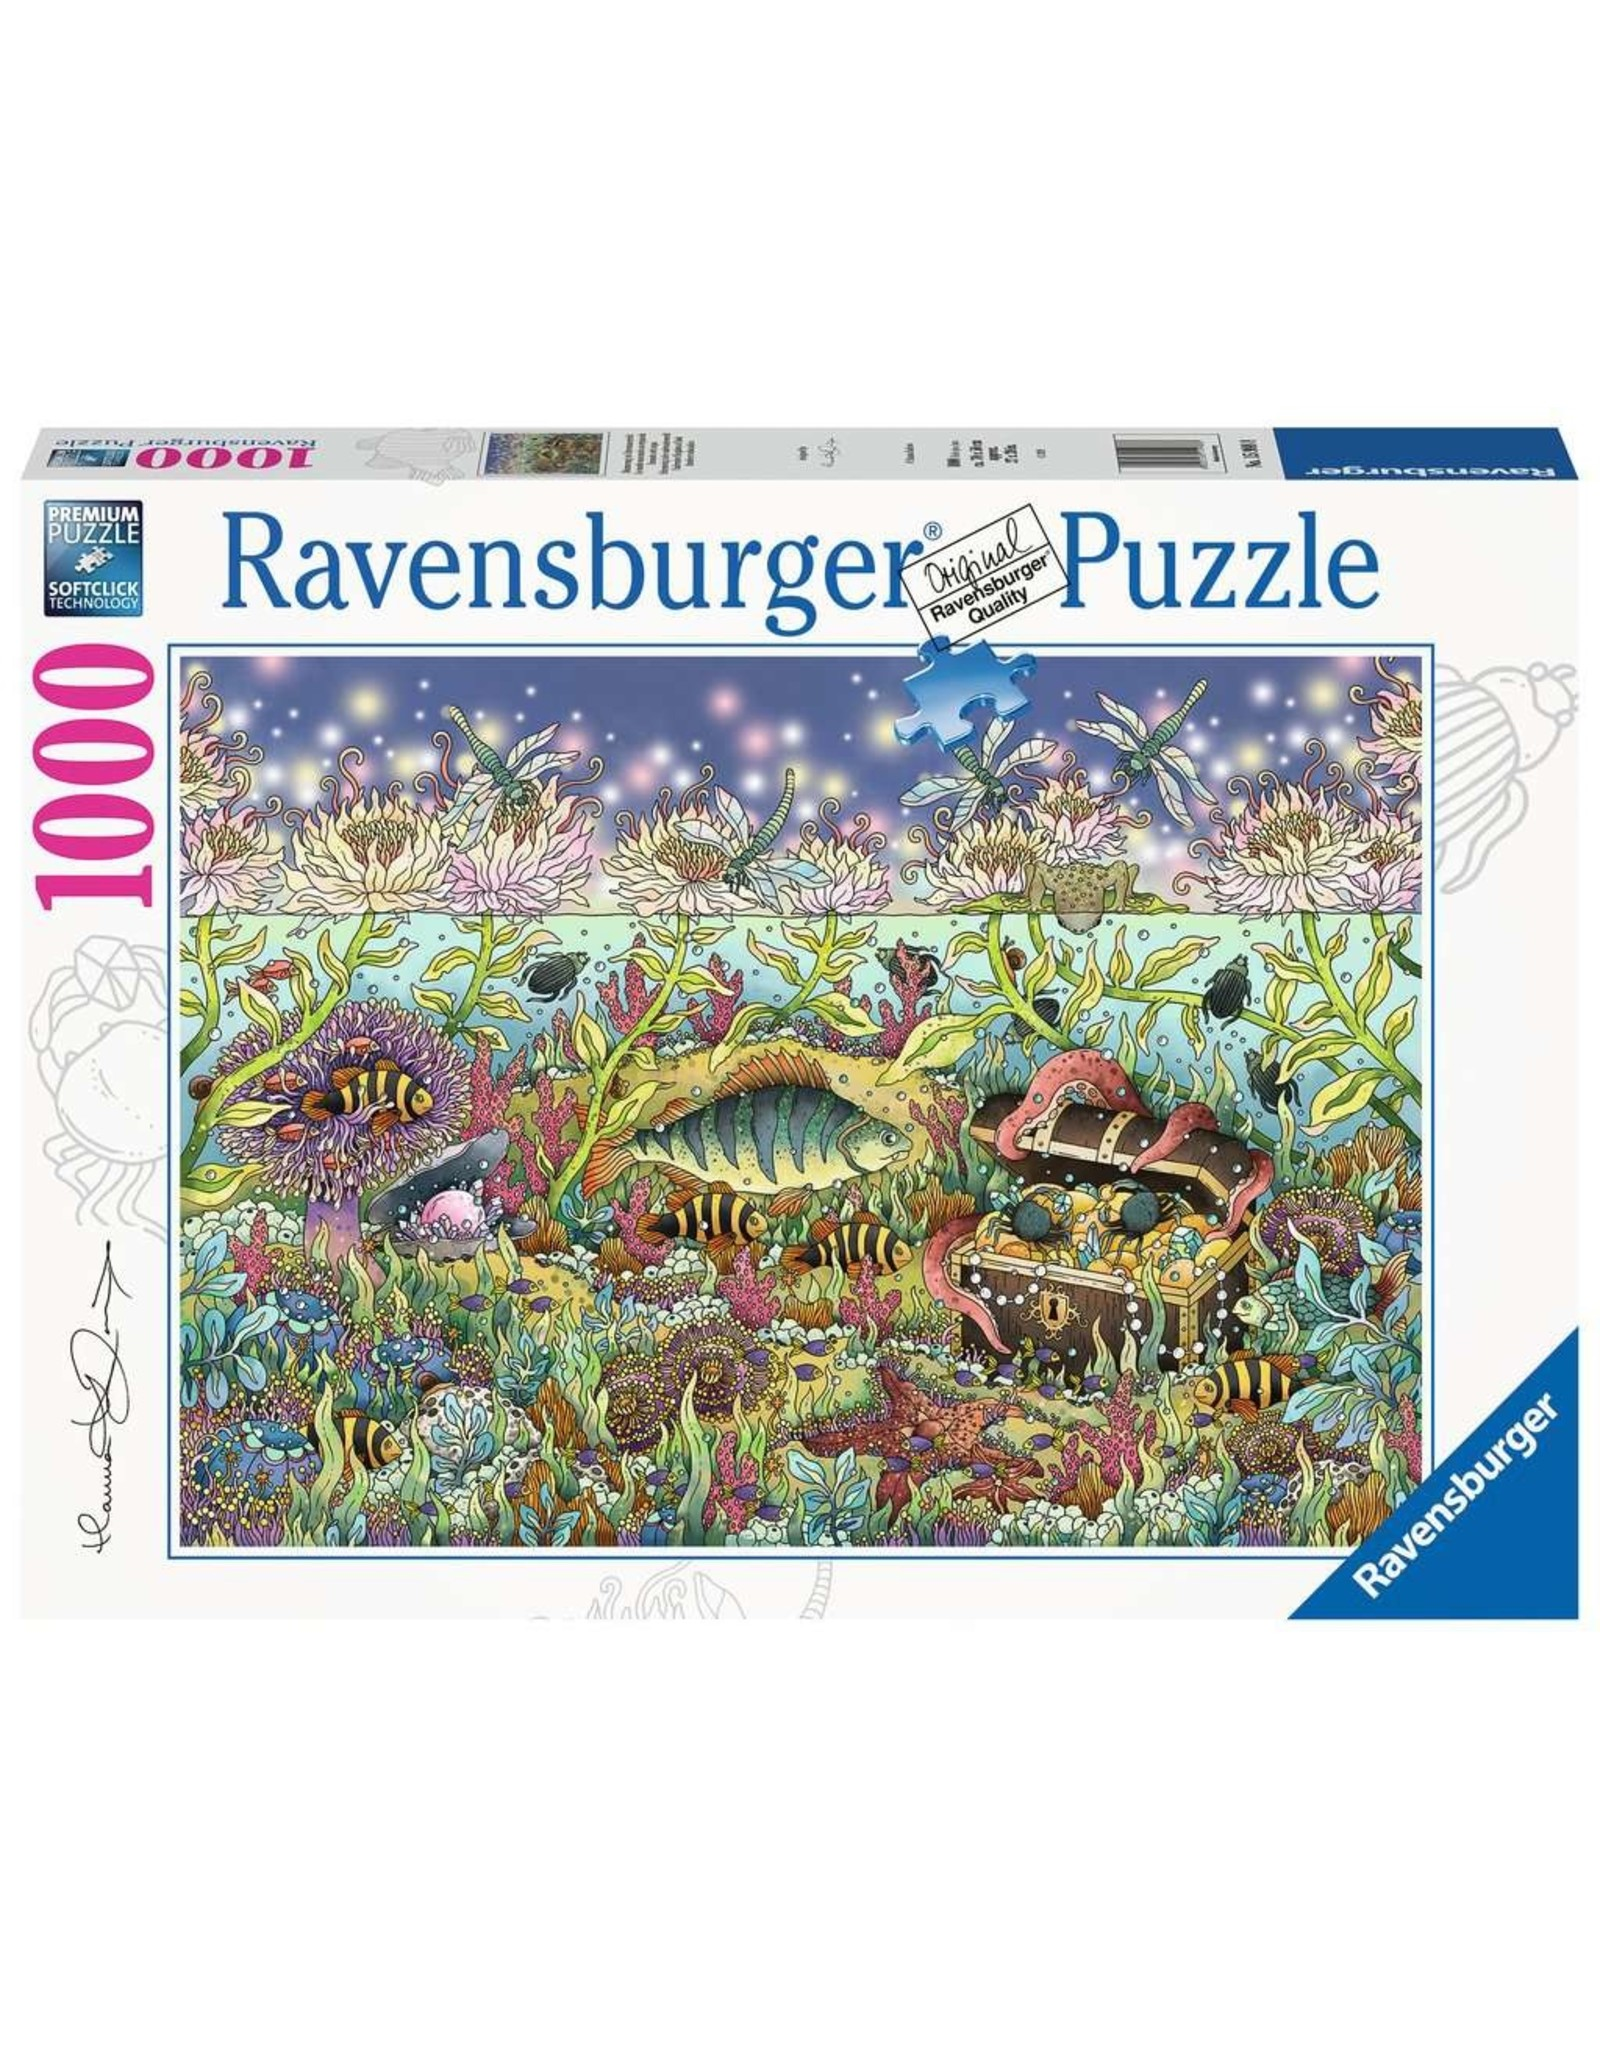 Ravensburger Underwater Kingdom at Dusk - 1000 Piece Puzzle